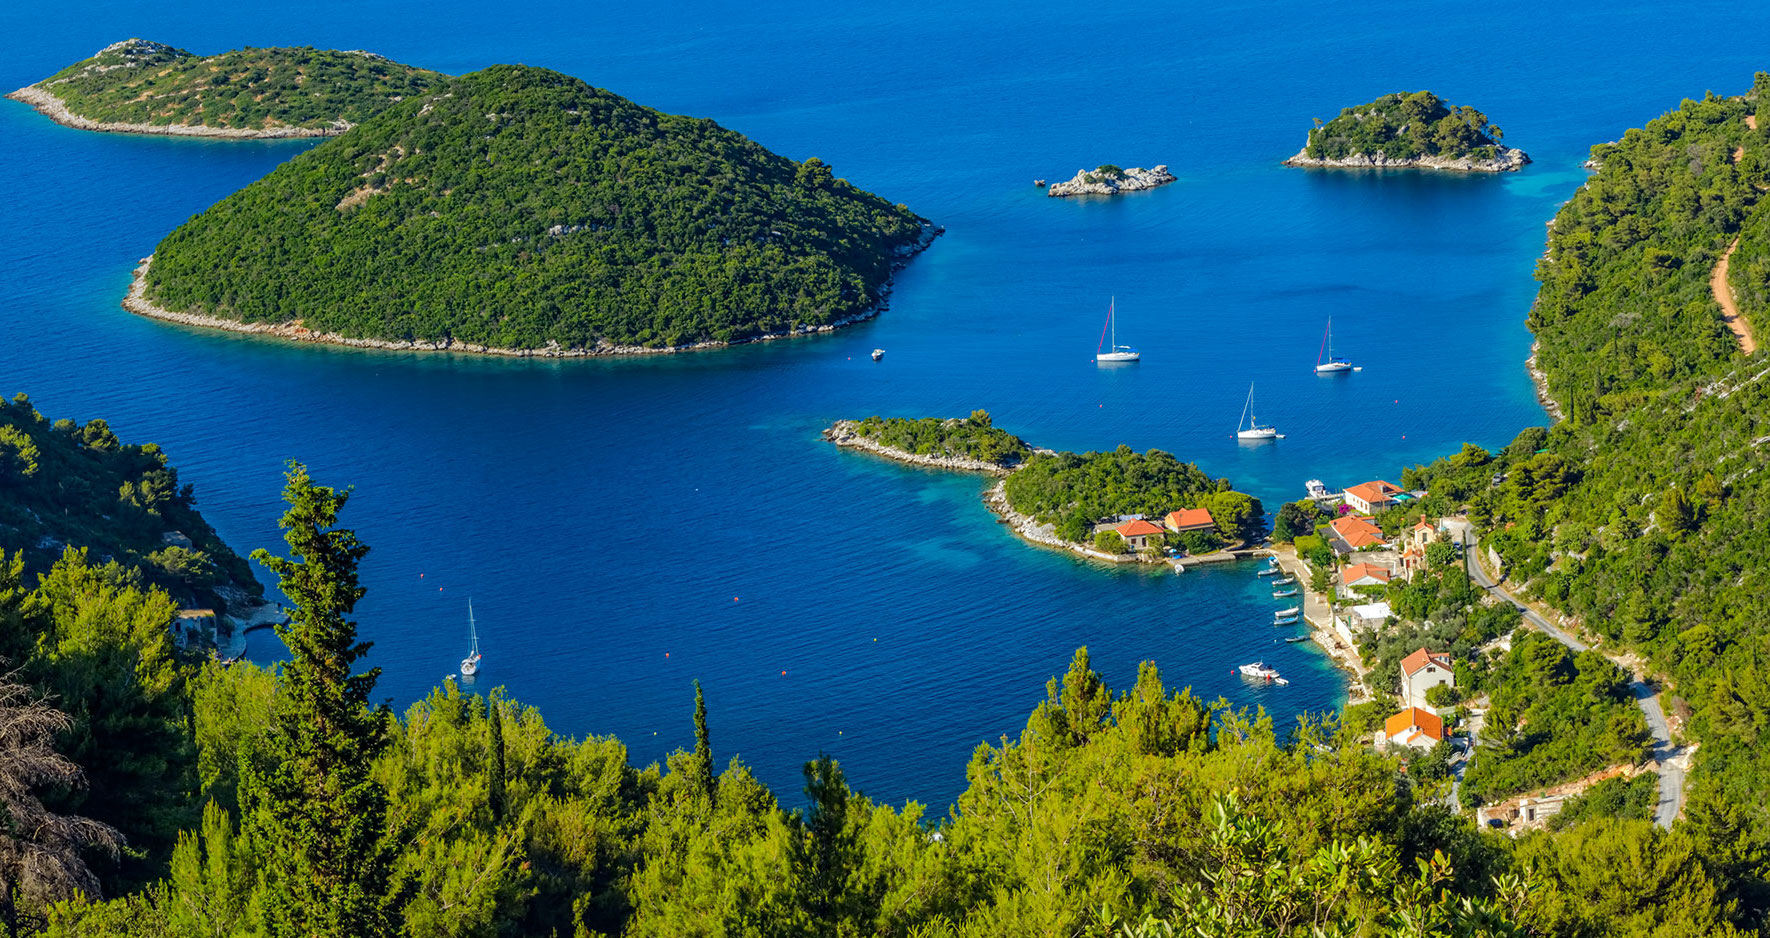 The island of Mljet, land by the sea, for a luxury resort hotel